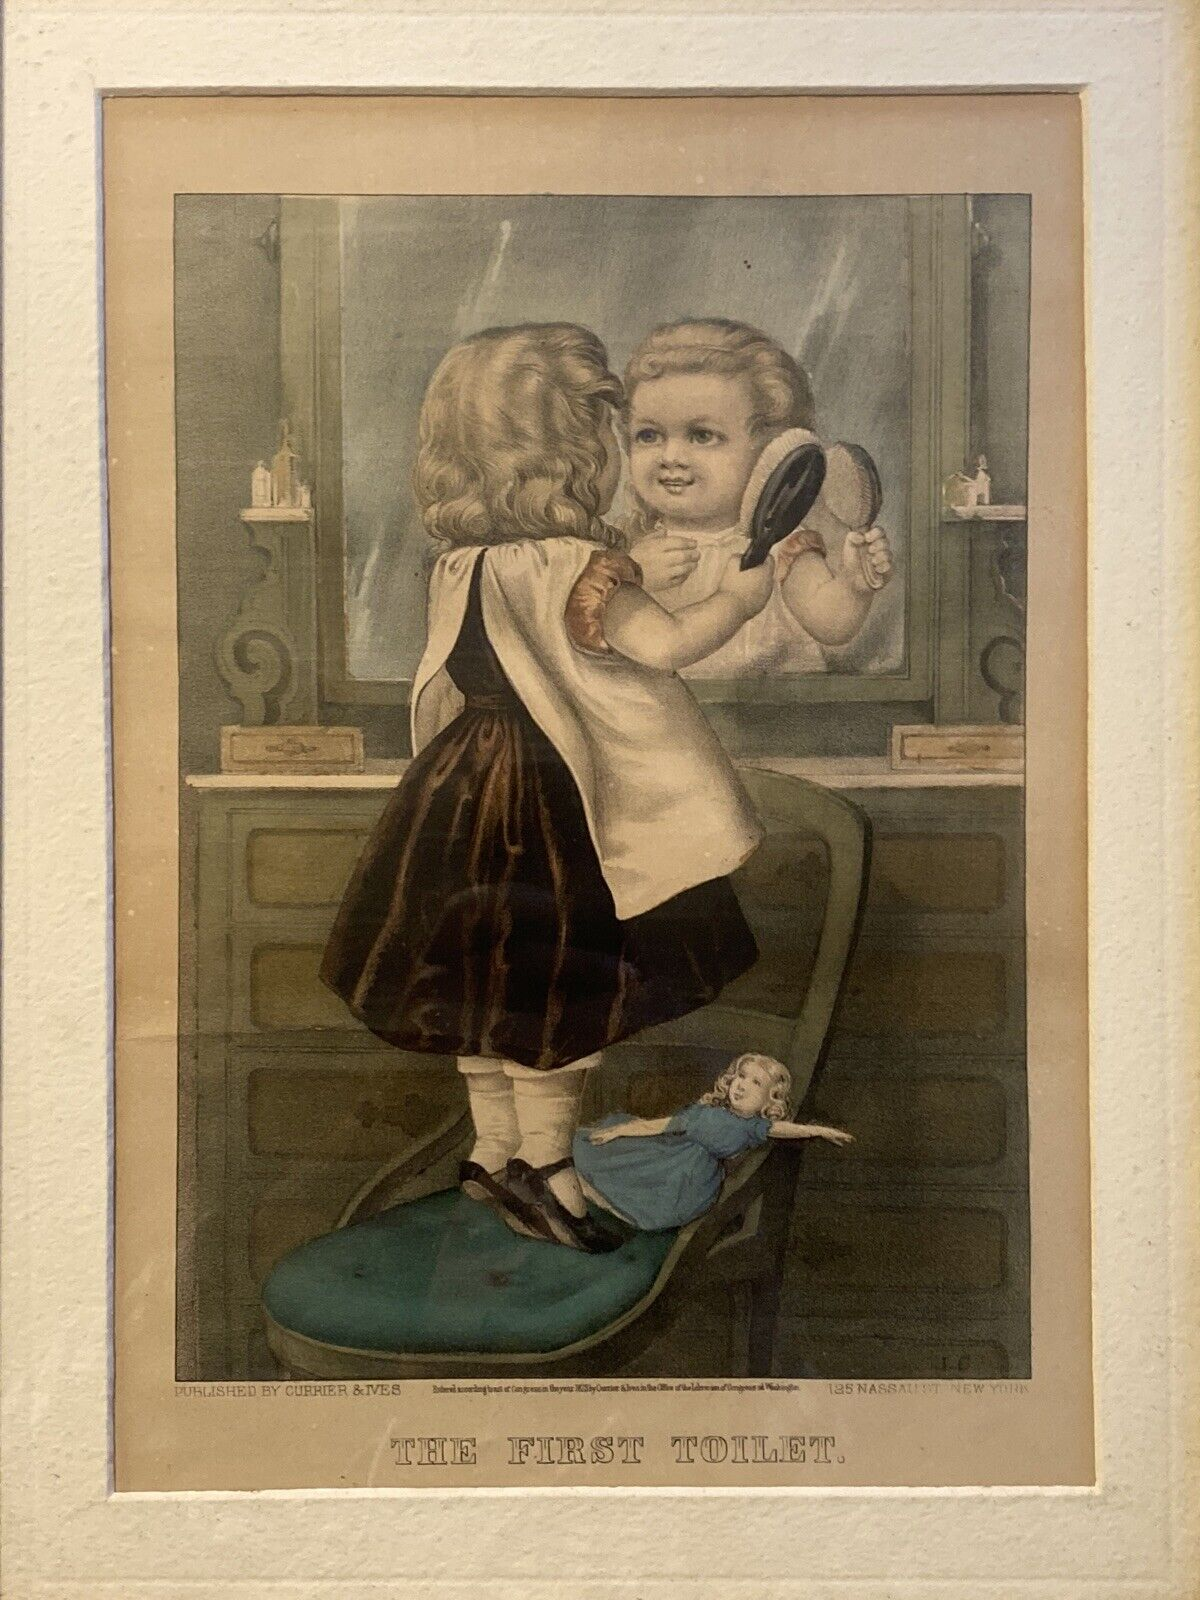 The First Toilet Victorian 1873 Currier Ives Childrens Print Framed 14X18 Nice - $49.00